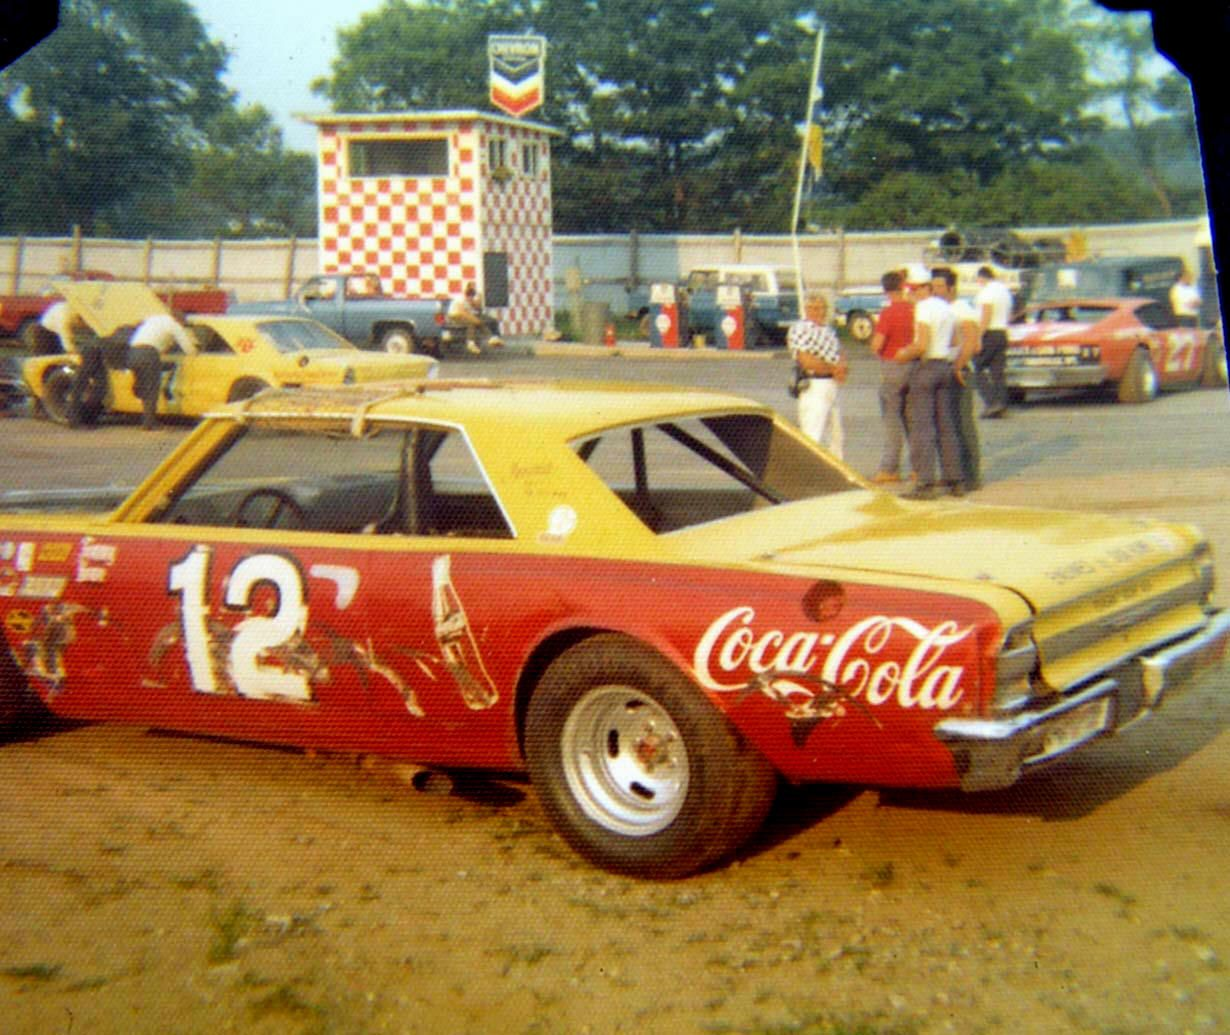 bobby allison 64 chevelle lms chevelle race cars pinterest cars vintage racing and. Black Bedroom Furniture Sets. Home Design Ideas